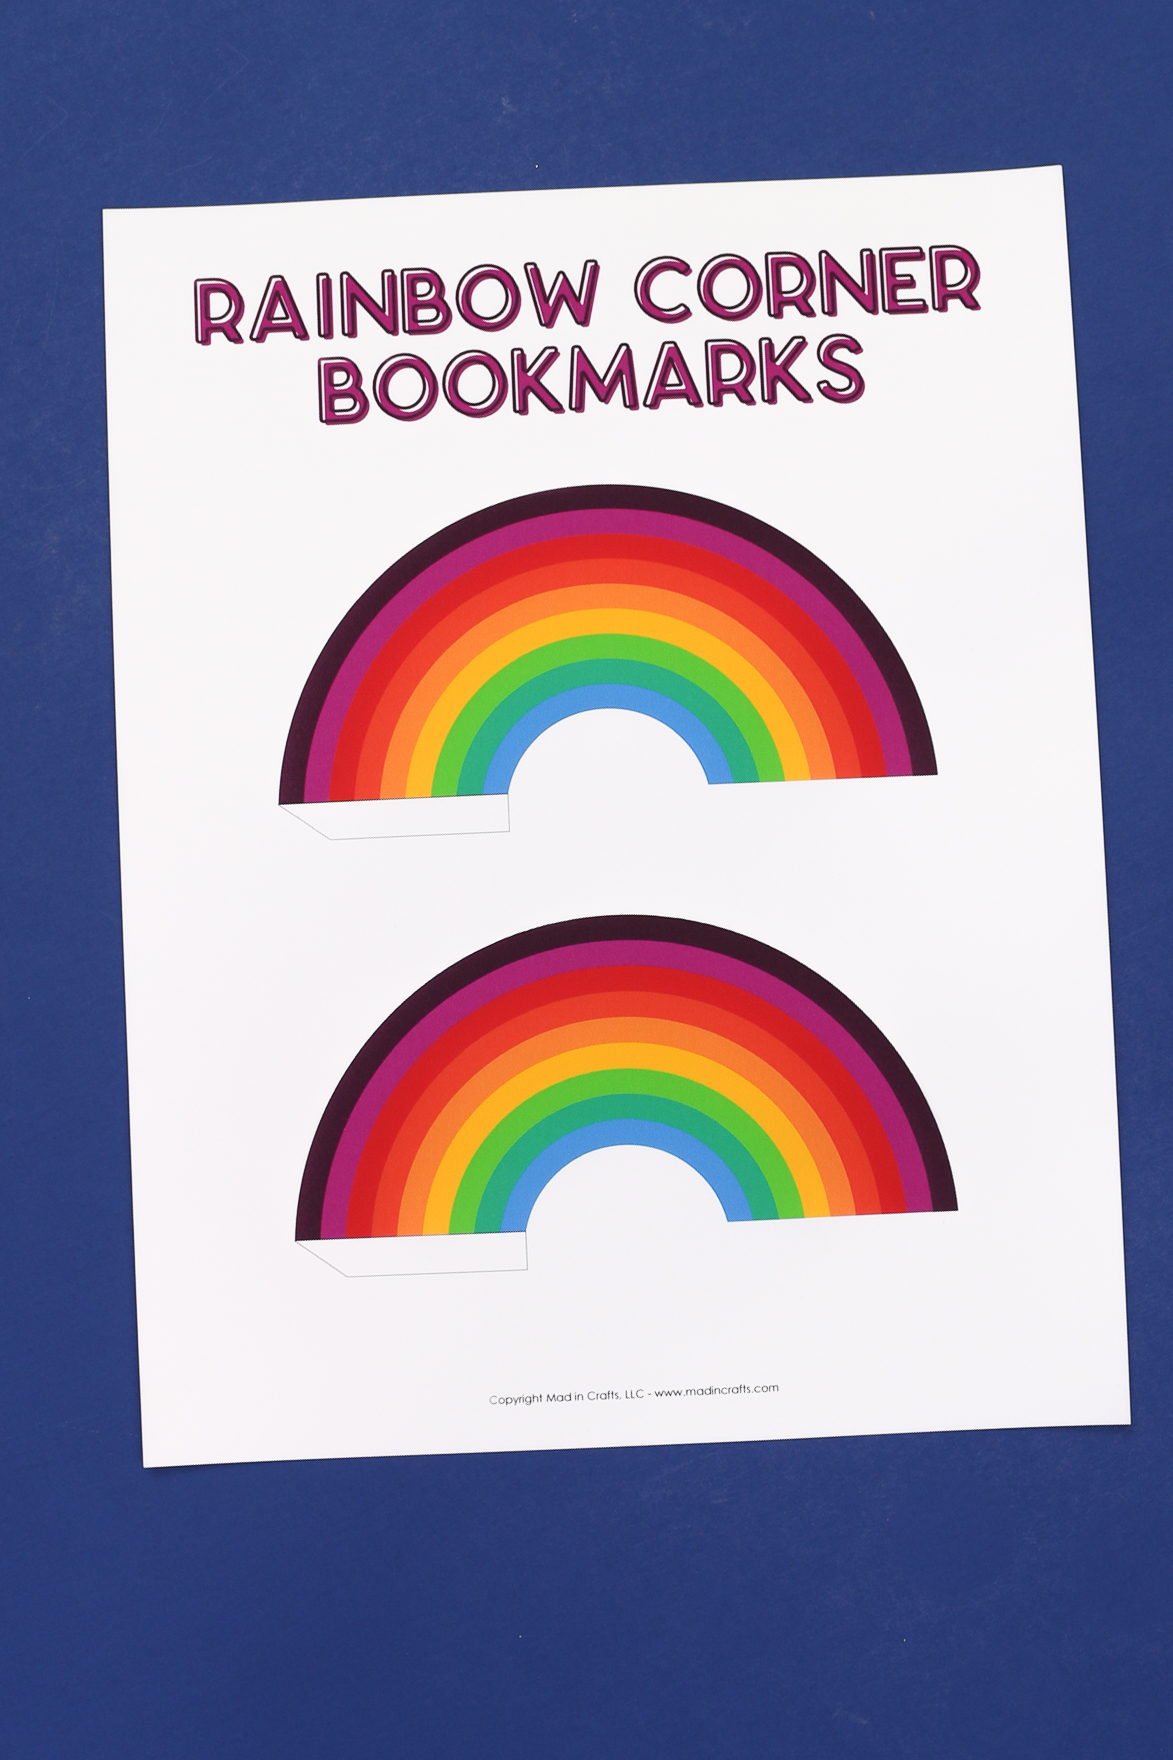 a printed paper with rainbow corner bookmarks